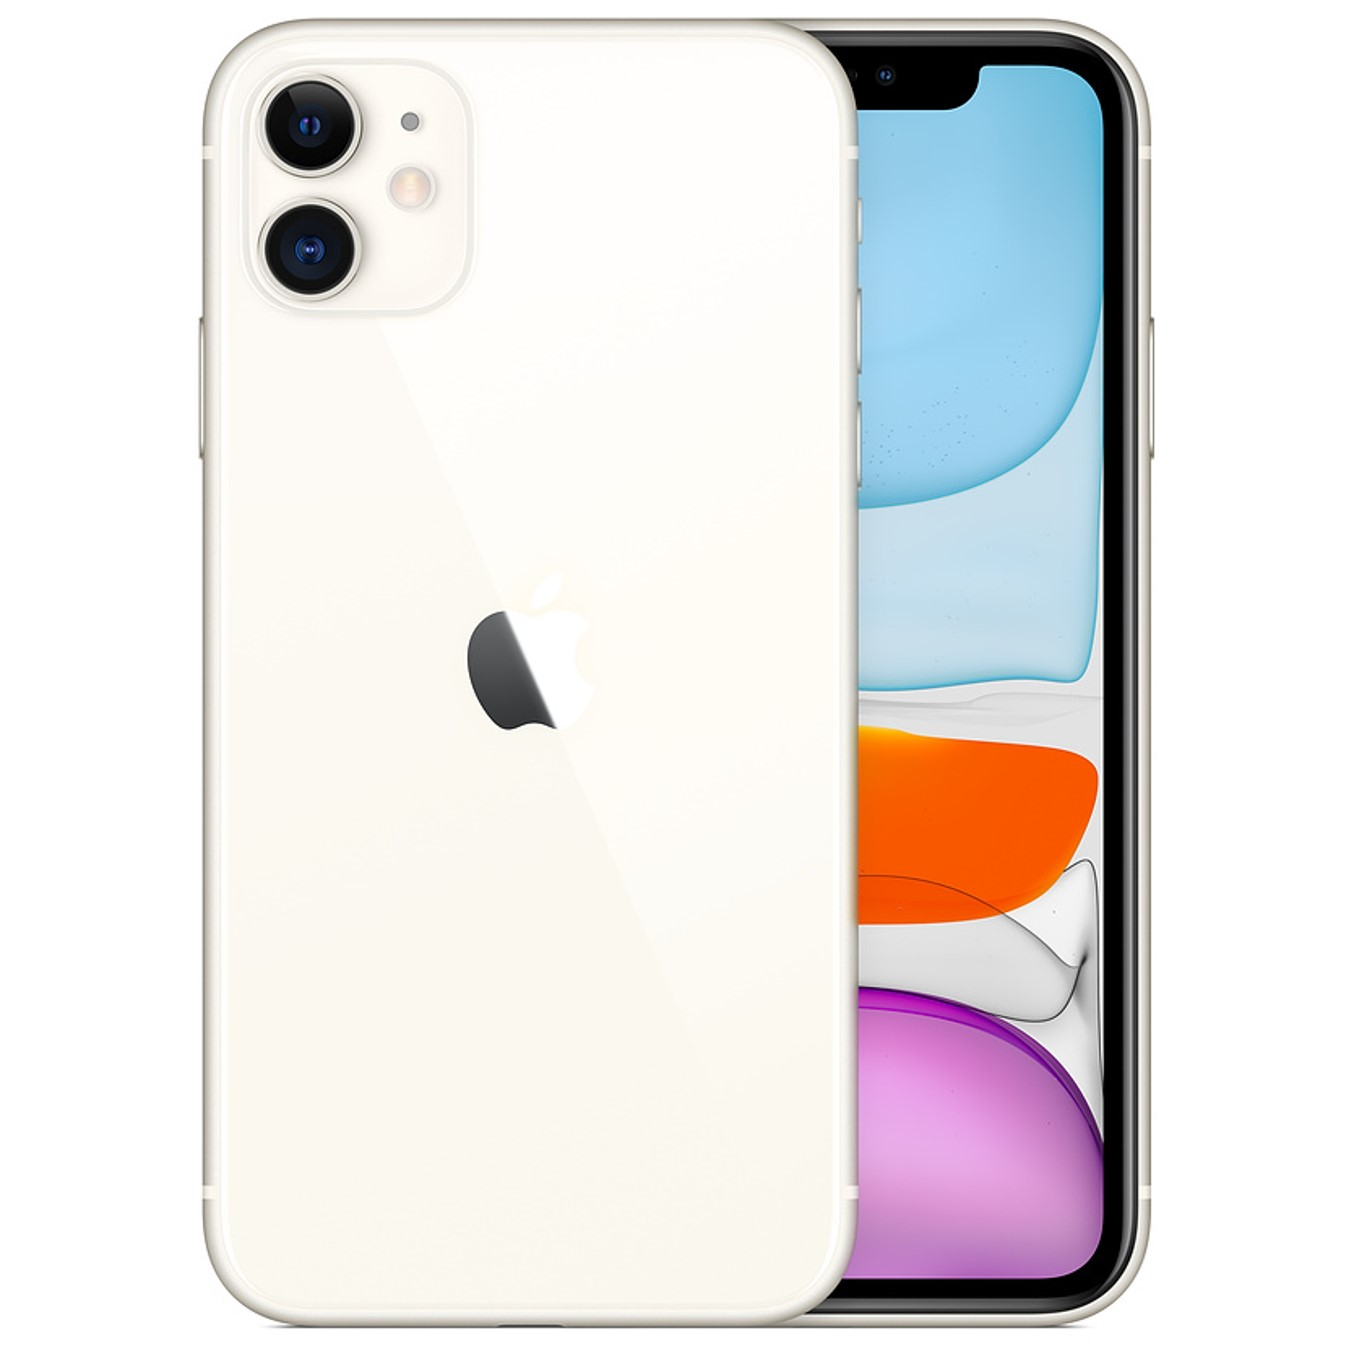 Telefono movil smartphone apple iphone 11 64gb blanco - 6.1pulgadas - dual sim